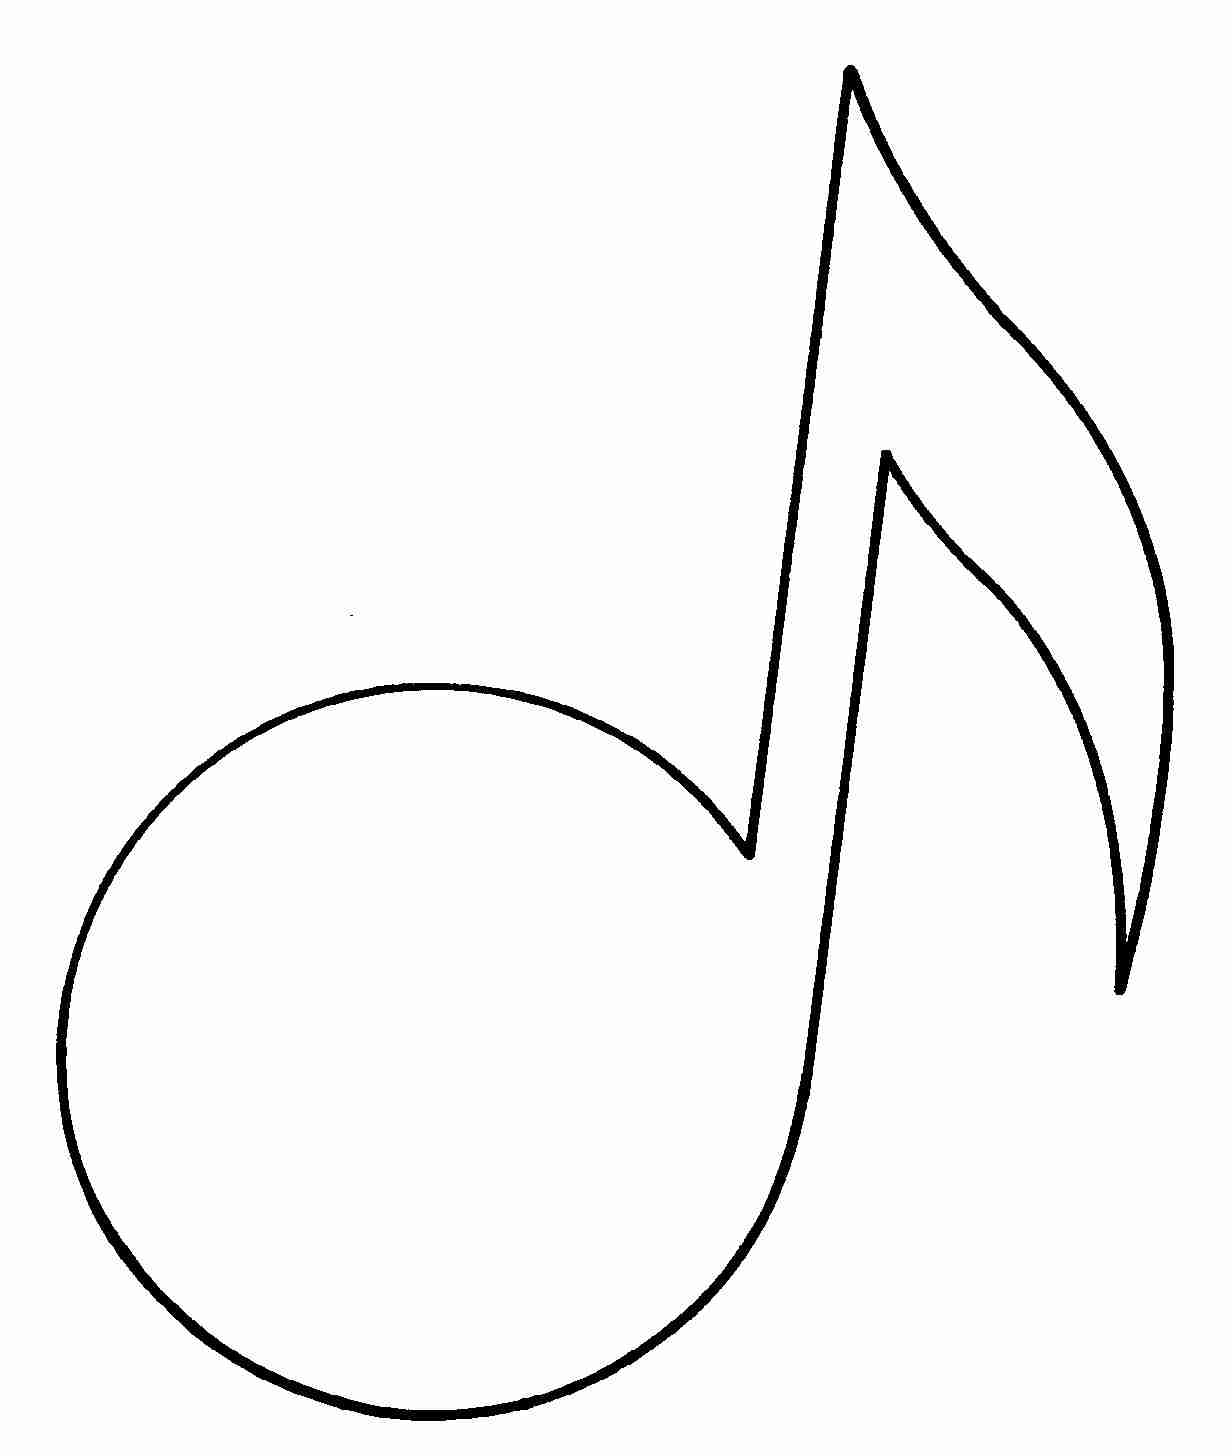 Music Notes Coloring Page to Print Of Coloring Pages Music Notes Bold Free Learning Fun Note Adult Download